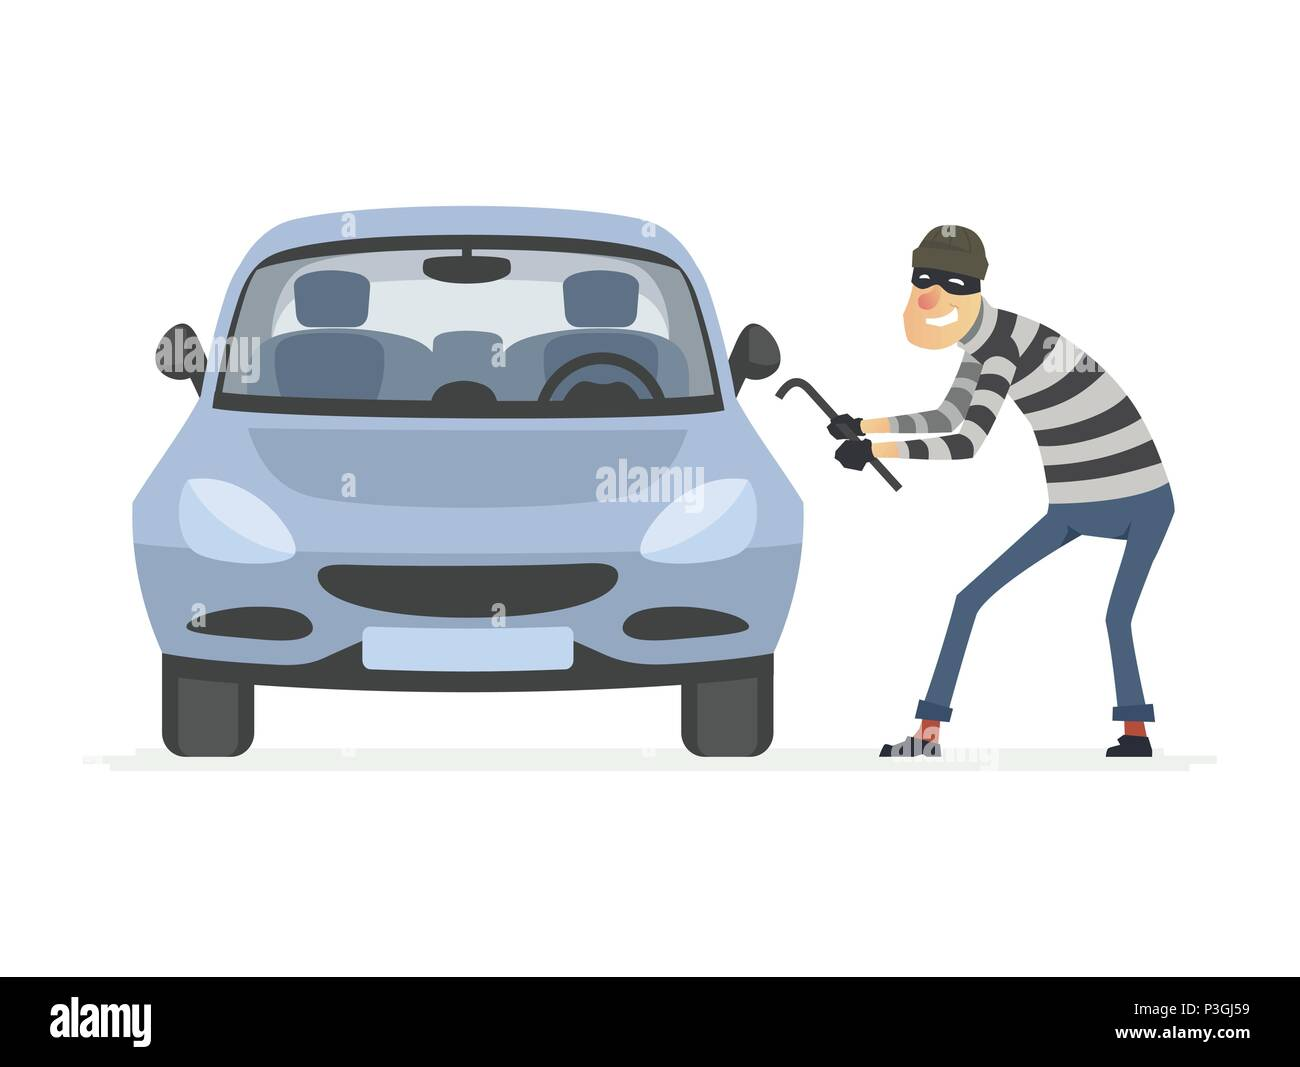 Car thief - cartoon people characters illustration Stock Vector